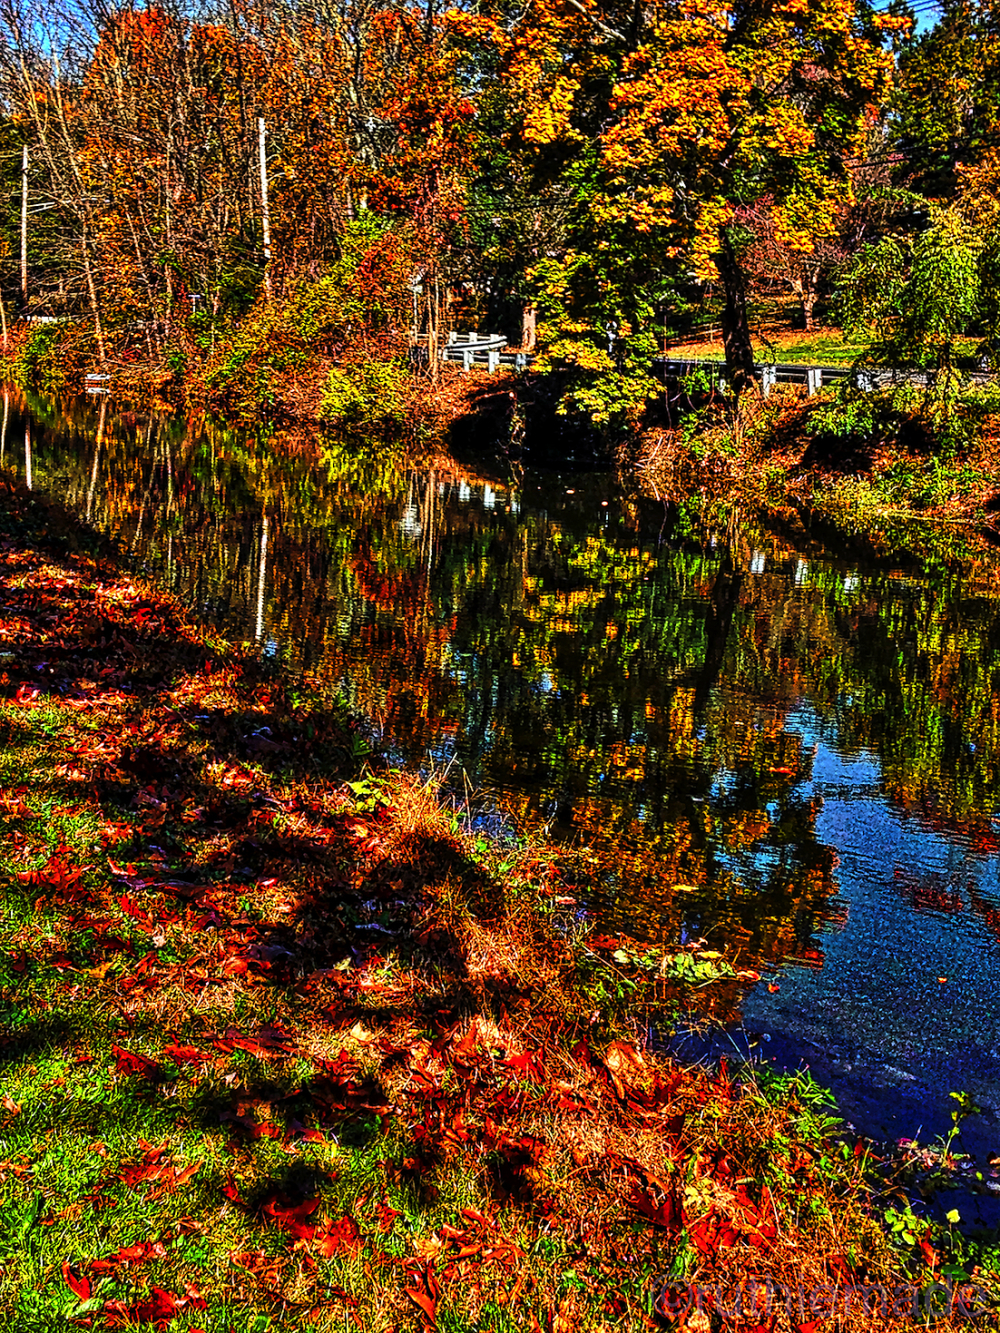 Along the canal in Autumn